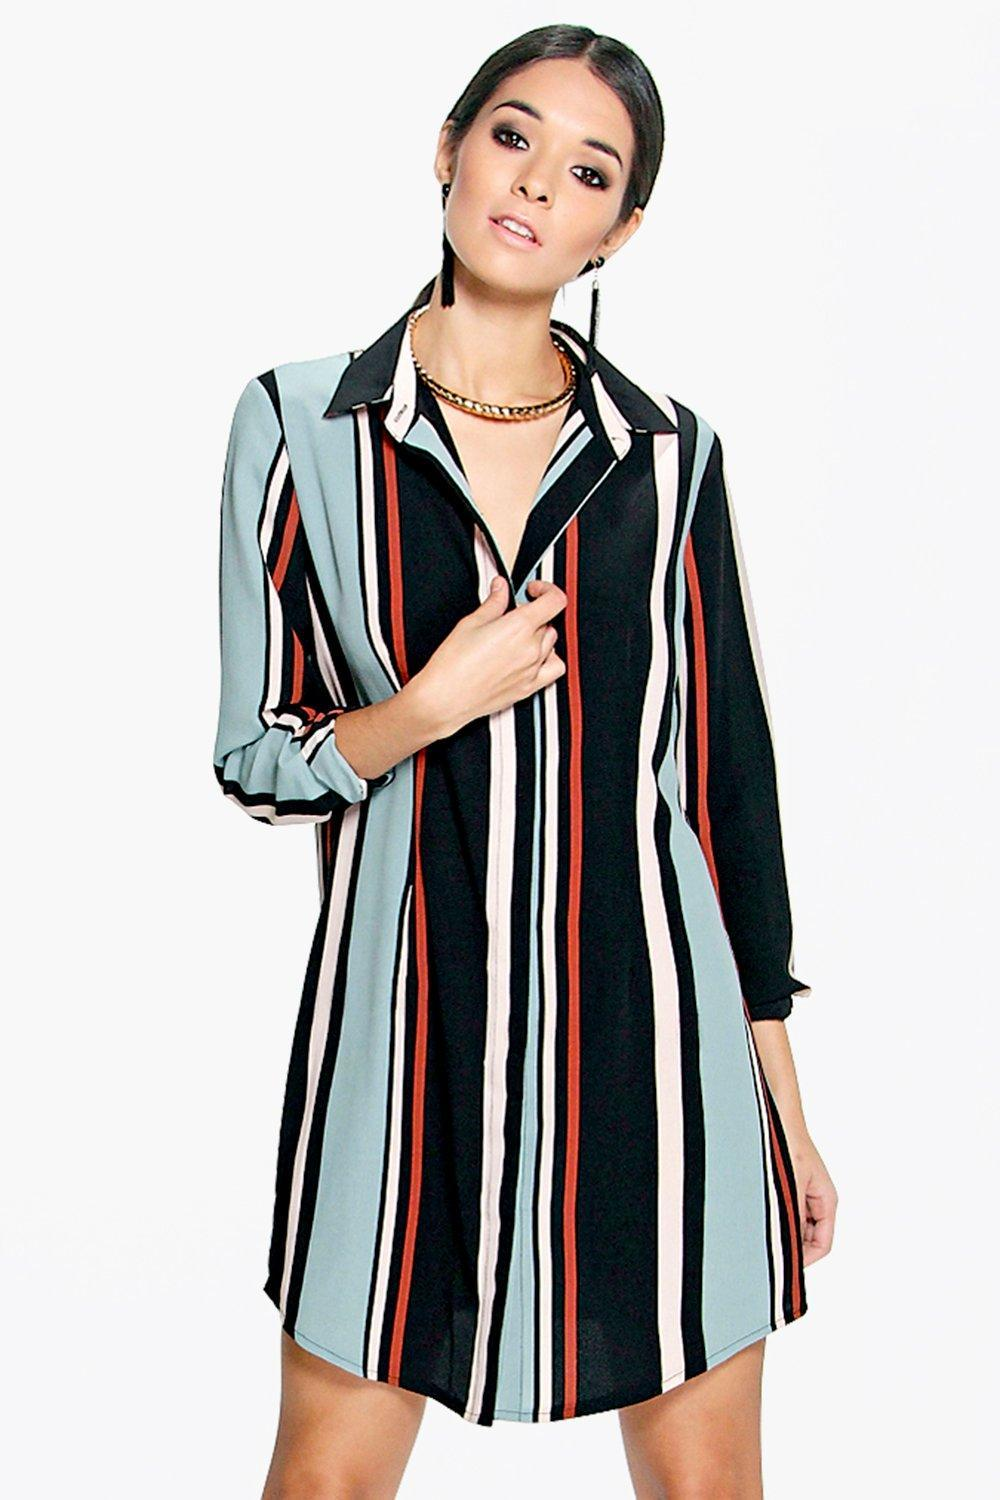 Long Sleeve Stripe Shirt Dress Multi - style: shirt; neckline: shirt collar/peter pan/zip with opening; pattern: vertical stripes; secondary colour: pale blue; predominant colour: navy; occasions: evening; length: just above the knee; fit: body skimming; fibres: polyester/polyamide - 100%; sleeve length: long sleeve; sleeve style: standard; pattern type: fabric; texture group: other - light to midweight; multicoloured: multicoloured; season: s/s 2016; wardrobe: event